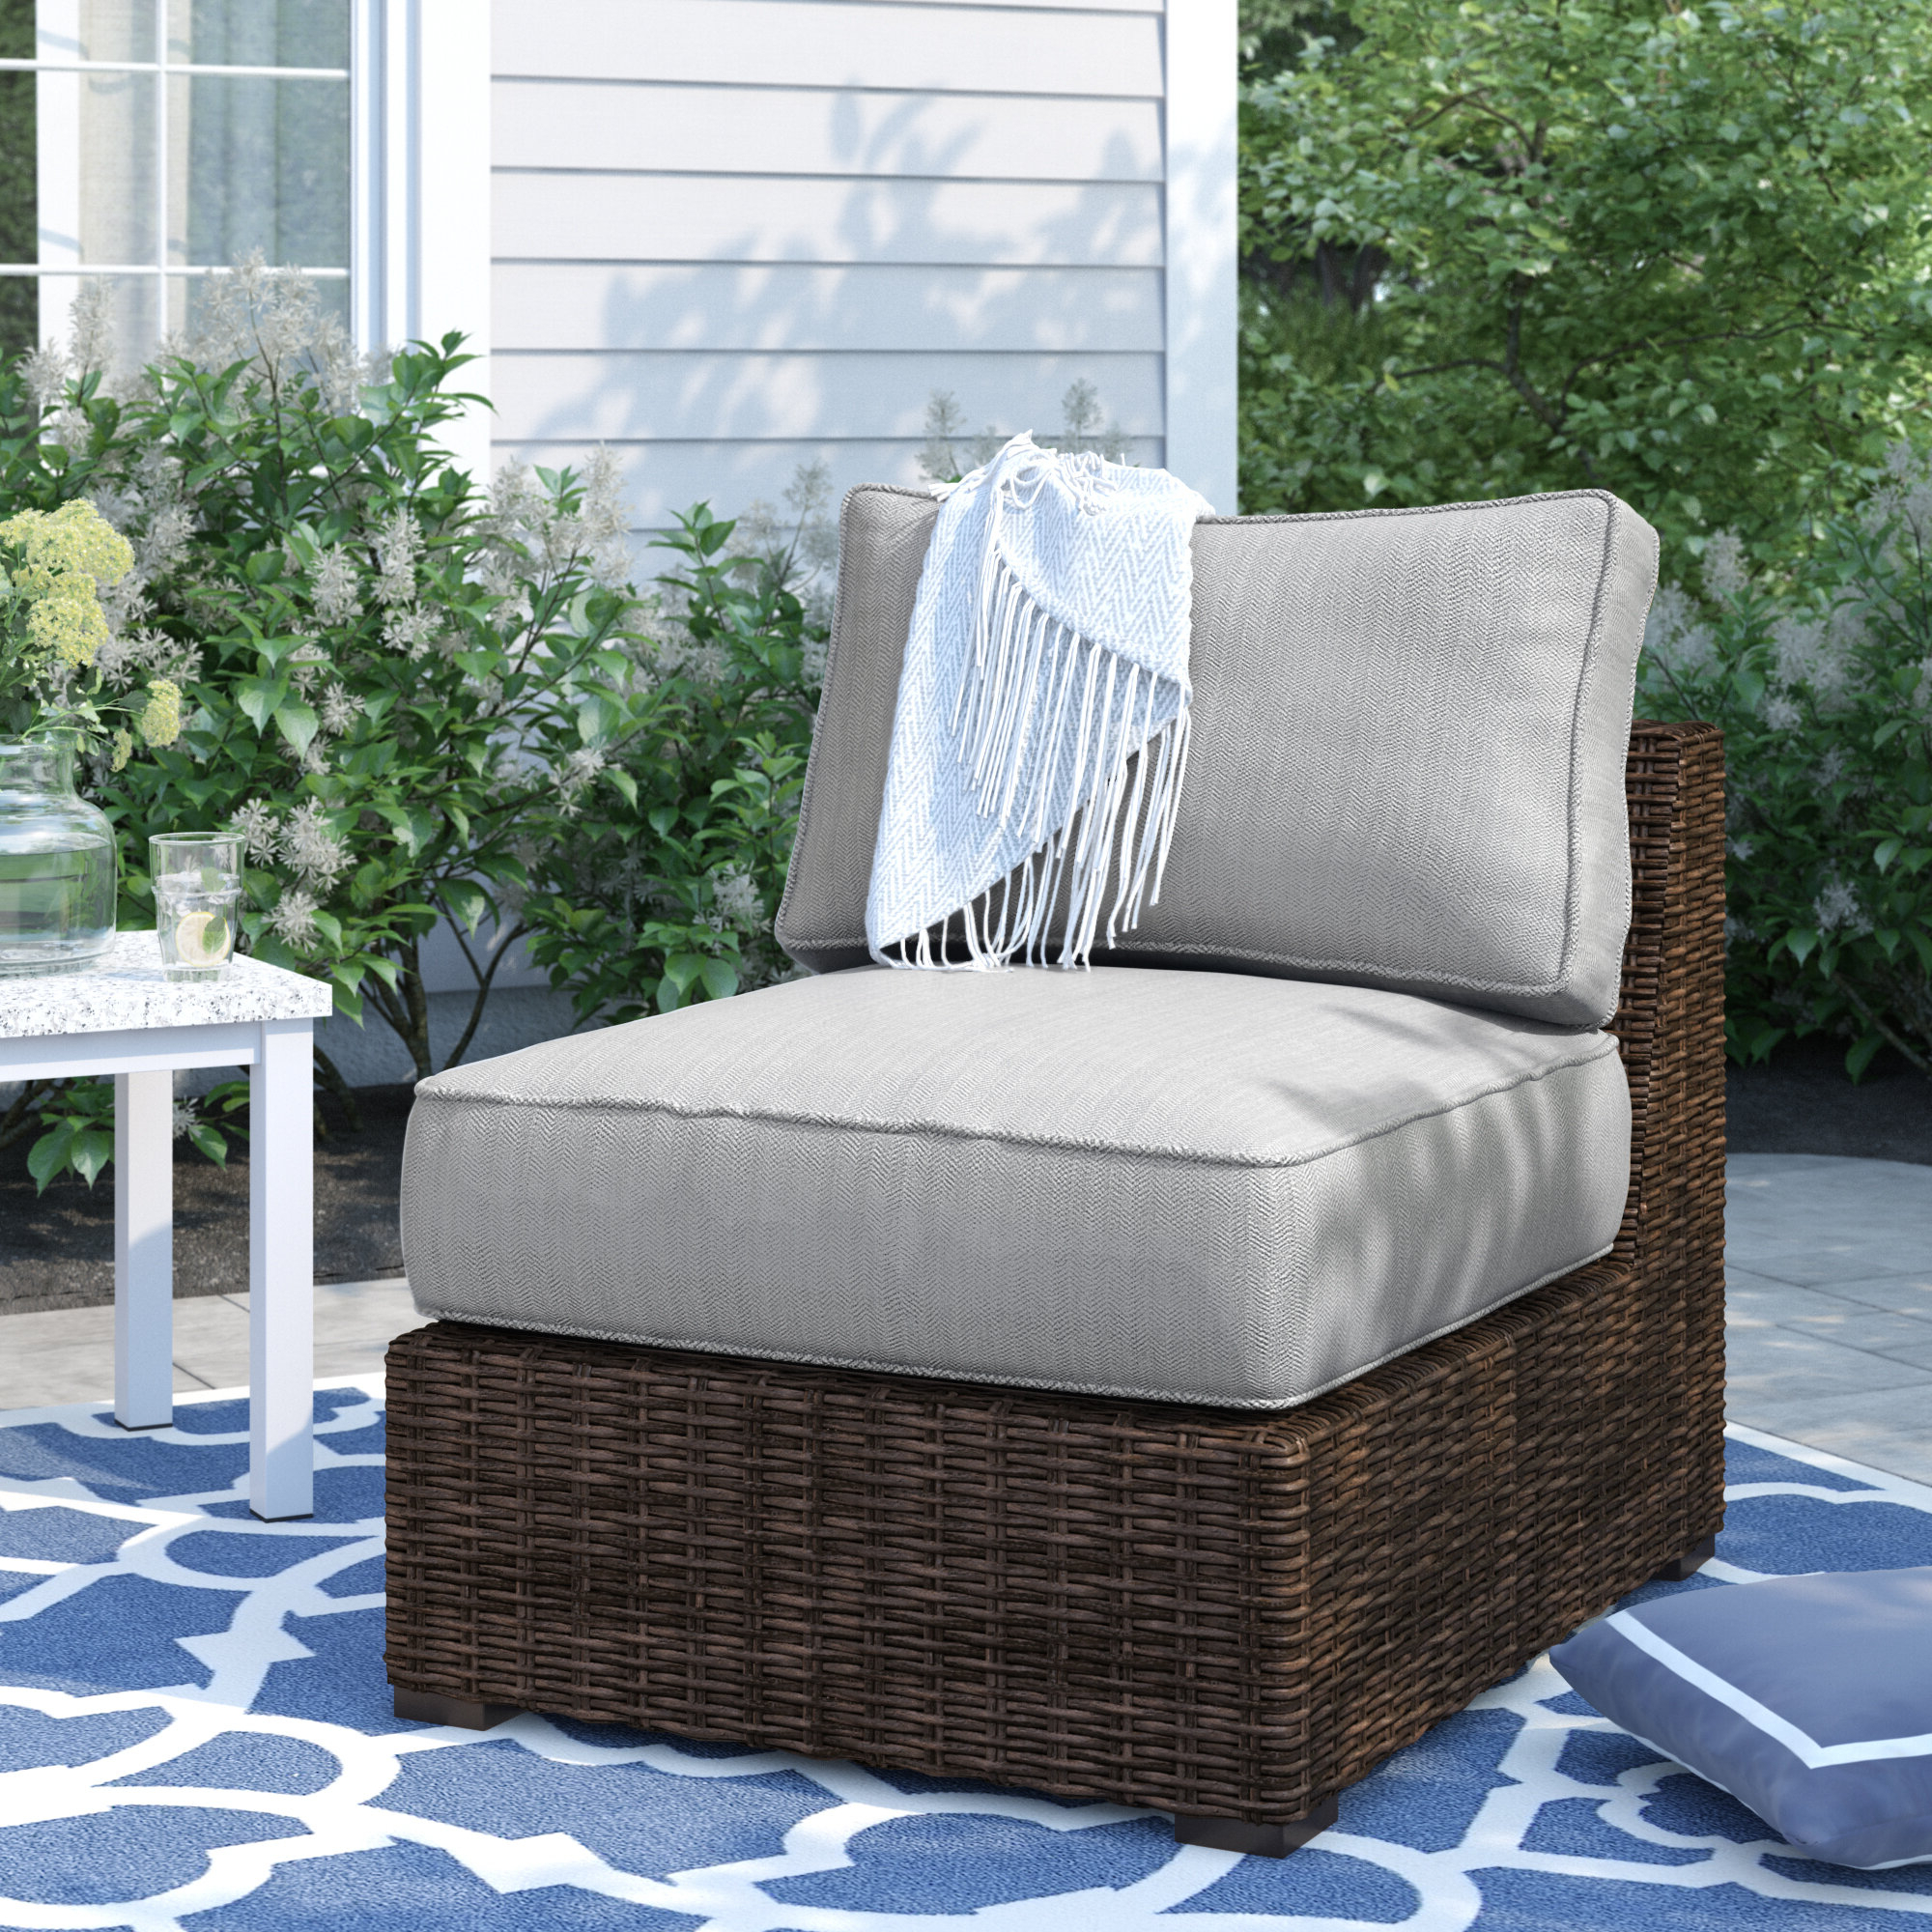 Oreland Patio Sofas With Cushions For Most Recently Released Oreland Patio Chair With Cushions (View 11 of 20)